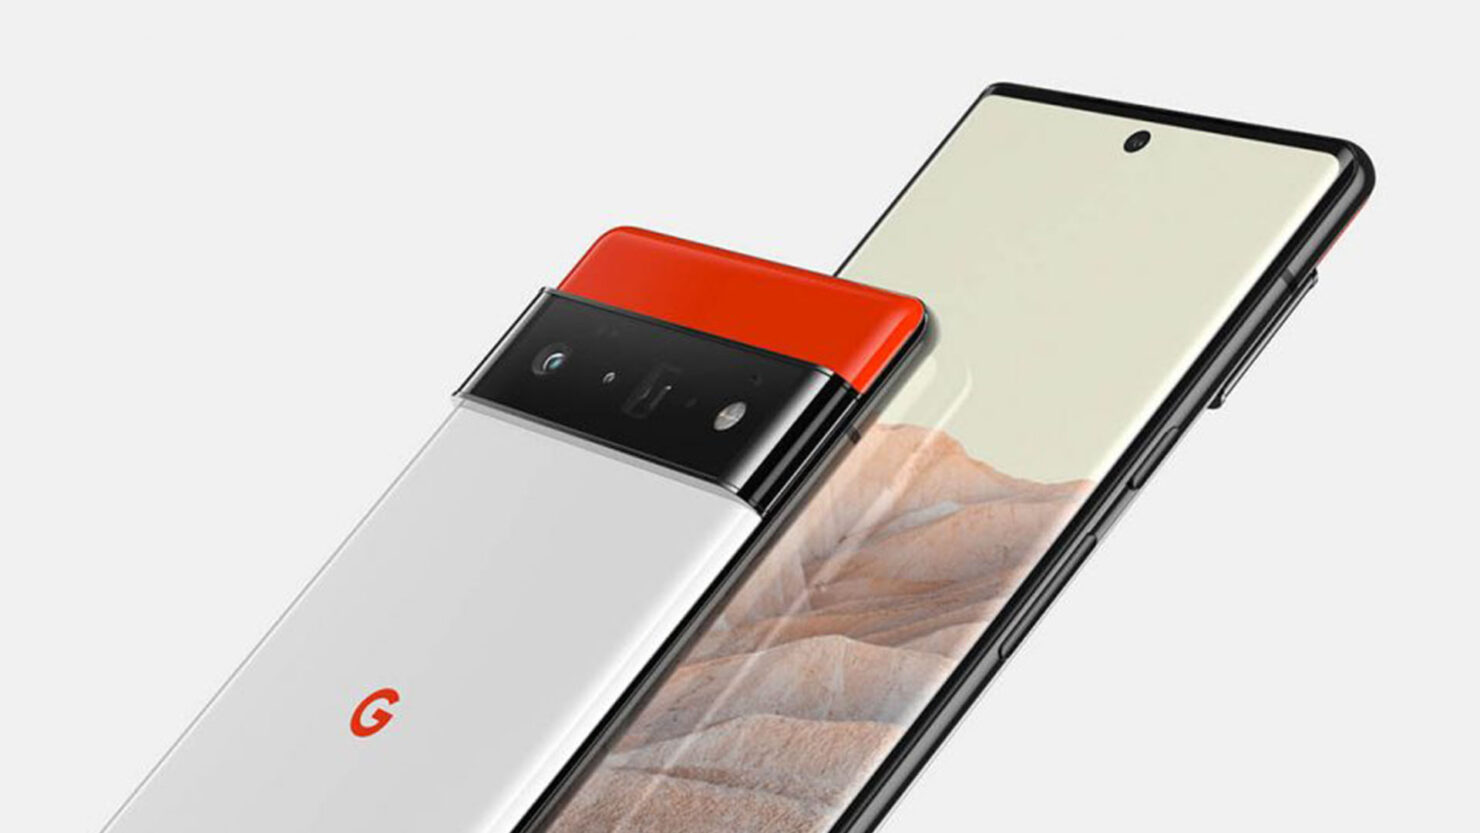 Pixel 6 XL to Offer 5x 'ultratele' Zoom, According to Fresh Leak